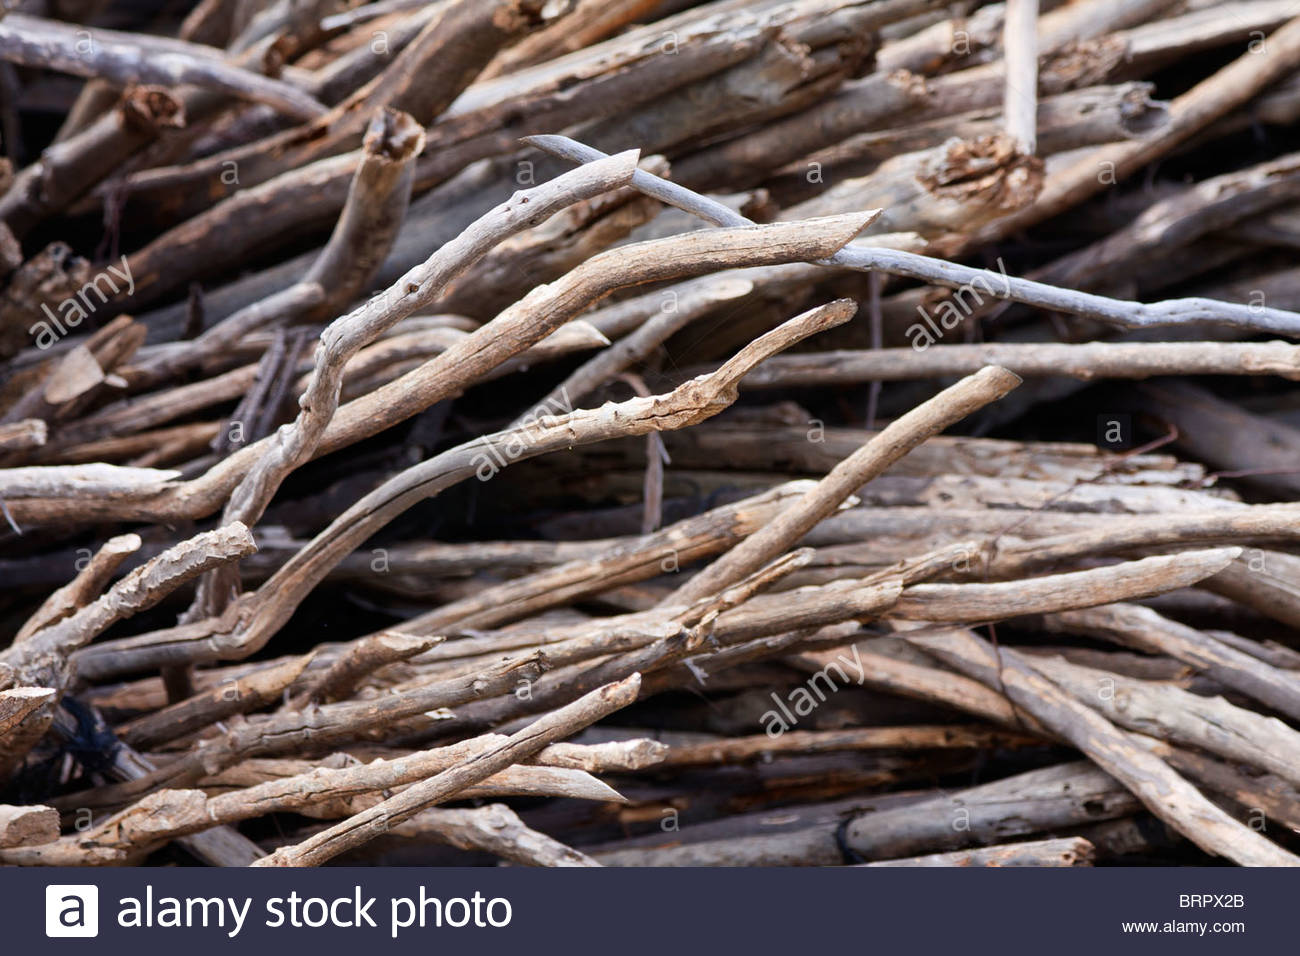 Pile of sticks and twigs dried and piled up haphazardly suitable 1300x956